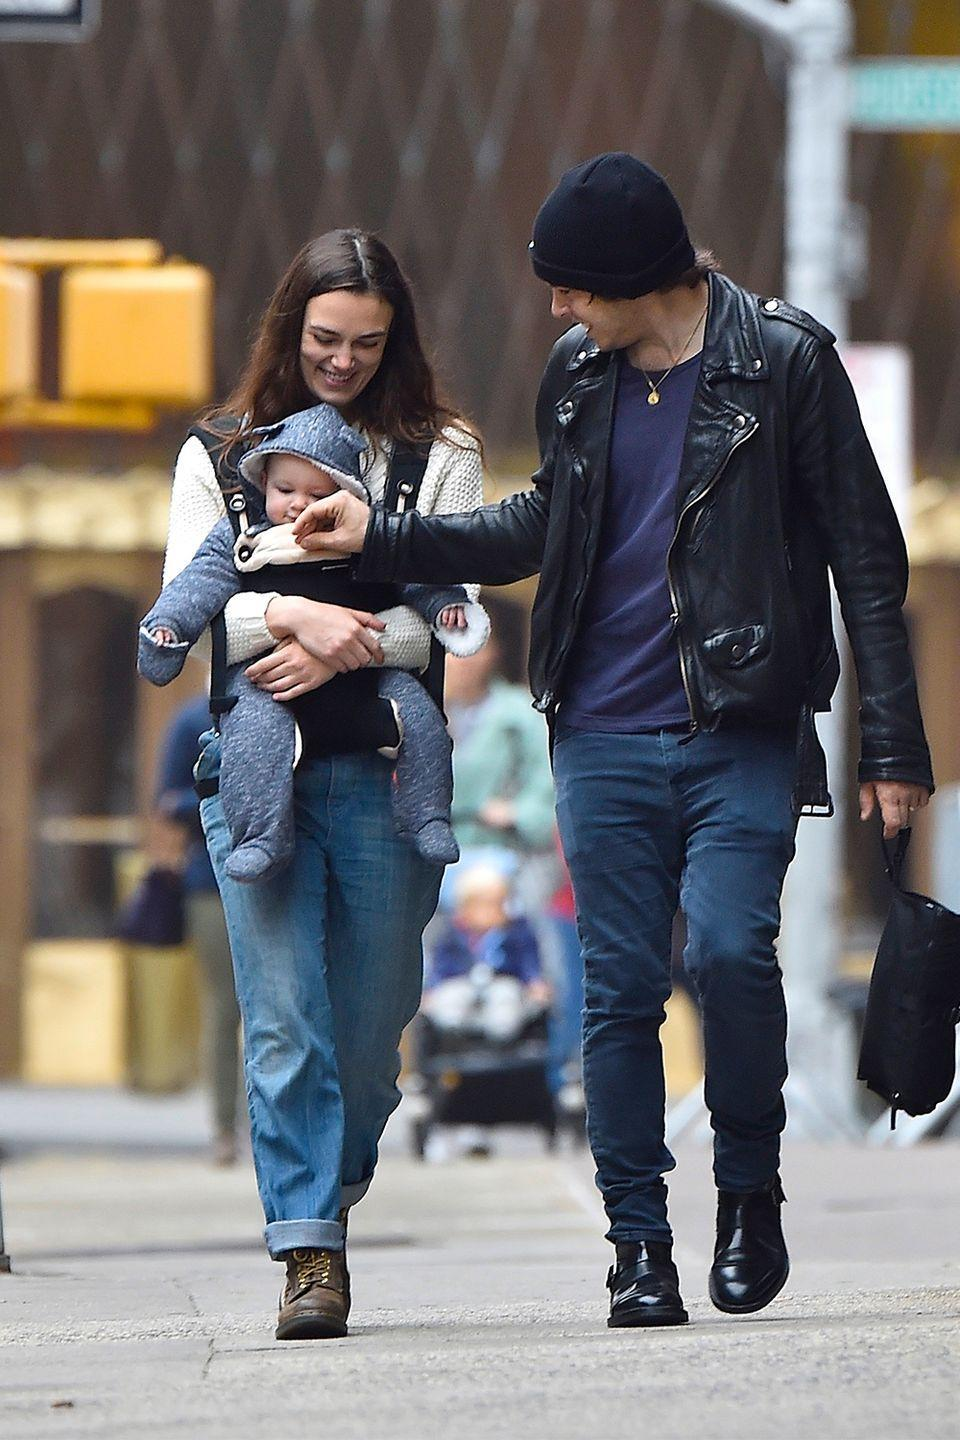 "<p>Knightley's daughter, Edie, came into the world in 2015. Knightley and husband James Righton decided to <a href=""http://www.dailymail.co.uk/tvshowbiz/article-3194004/Keira-Knightley-finally-reveals-daughter-s-gets-candid-post-baby-body-interview.html"" rel=""nofollow noopener"" target=""_blank"" data-ylk=""slk:keep her name a secret"" class=""link rapid-noclick-resp"">keep her name a secret</a> for two months. Since announcing the name, Knightley has been more forthcoming about her daughter. She recalled the time a <a href=""http://www.dailymail.co.uk/tvshowbiz/article-4010562/My-daughter-swore-Trump-got-office-Keira-Knightley-reveals-19-month-old-Edie-s-weird-reaction-election-outcome.html"" rel=""nofollow noopener"" target=""_blank"" data-ylk=""slk:19-month-old Edie said a vulgar word"" class=""link rapid-noclick-resp"">19-month-old Edie said a vulgar word</a> after President Donald Trump was elected. </p><p>""She's literally repeating everything we say so we're having to be really careful..."" Knightley said. ""I brought her into bed and she's like this watching the television completely silently and totally still for about four minutes and she rolls over onto her back and she closes her eyes and she goes 'Fuck!' I'm very proud."" </p>"